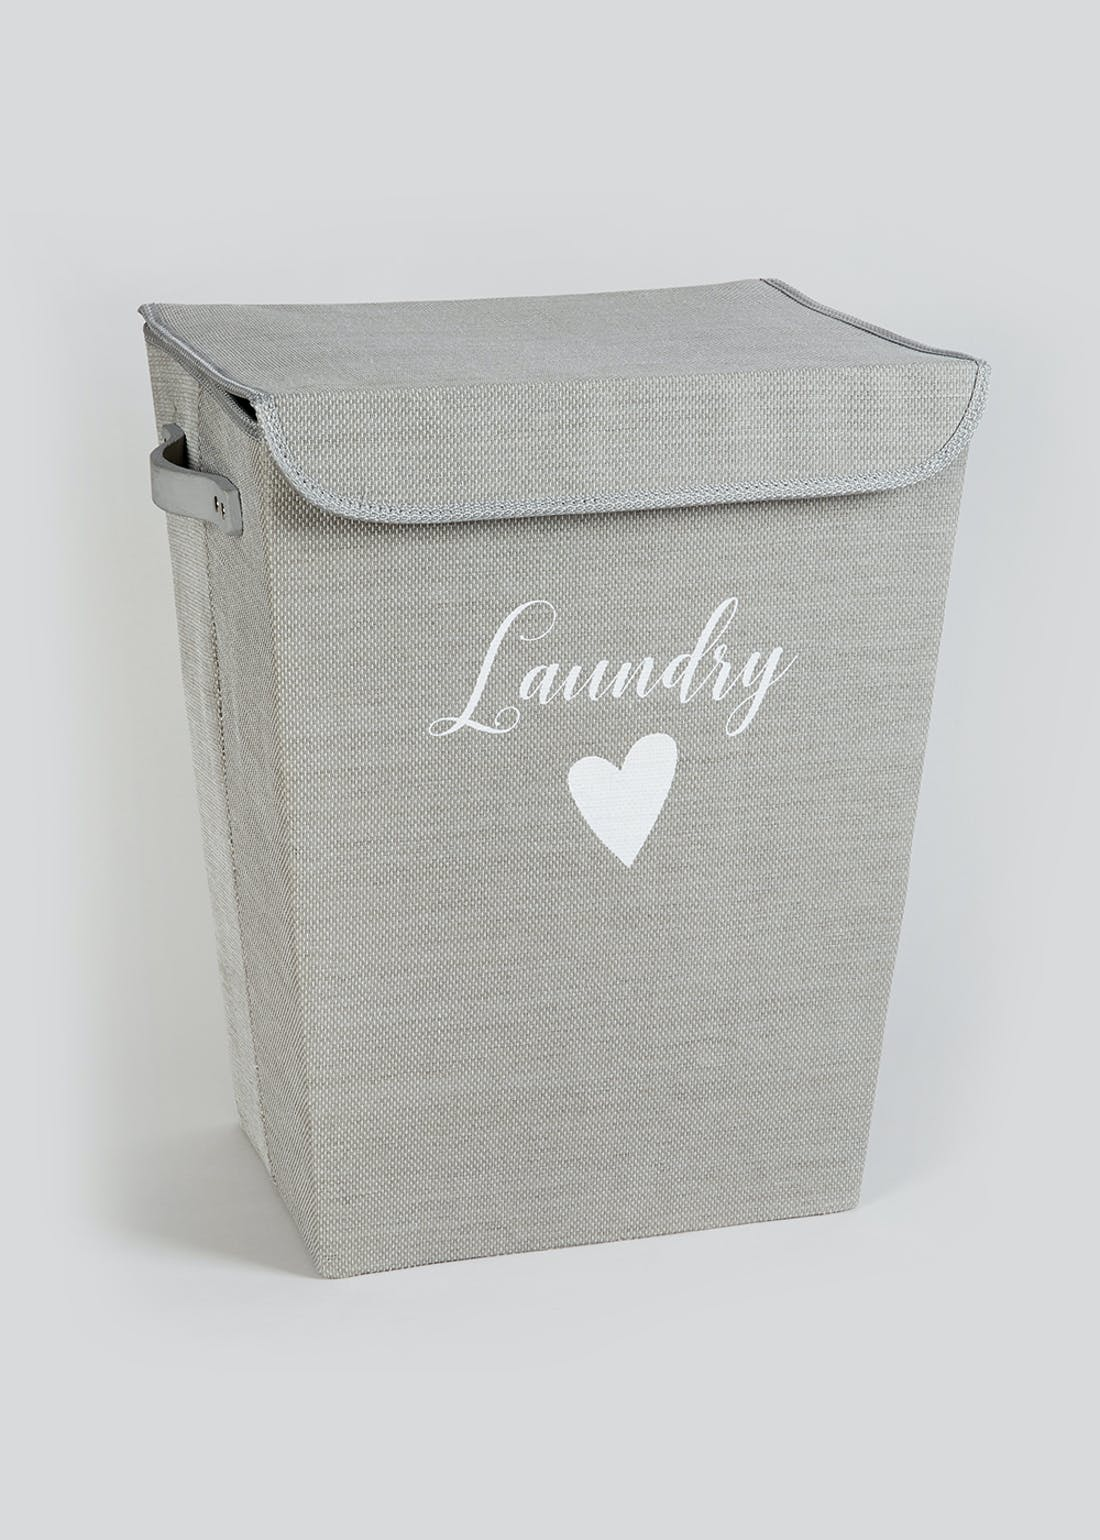 Fabric Laundry Basket (50cm x 40cm x 29cm)